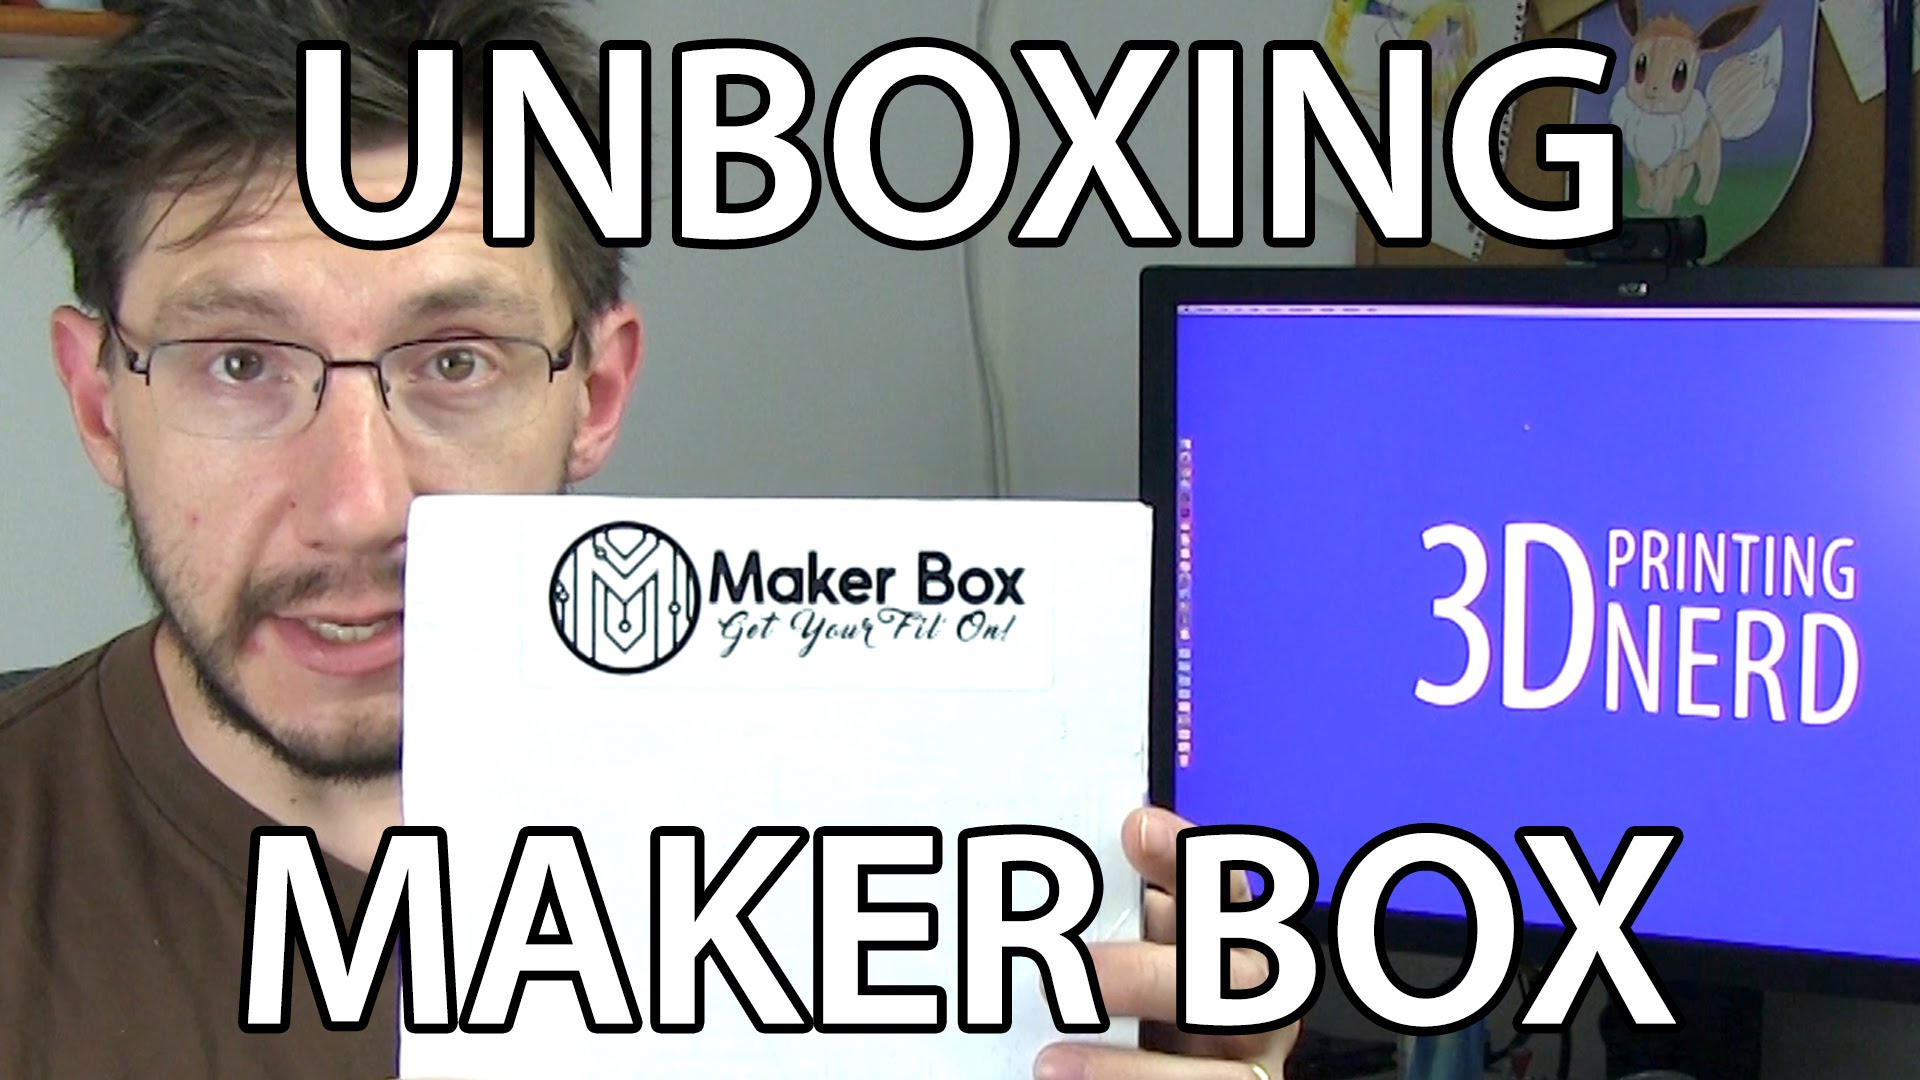 What's Inside a Maker Box?